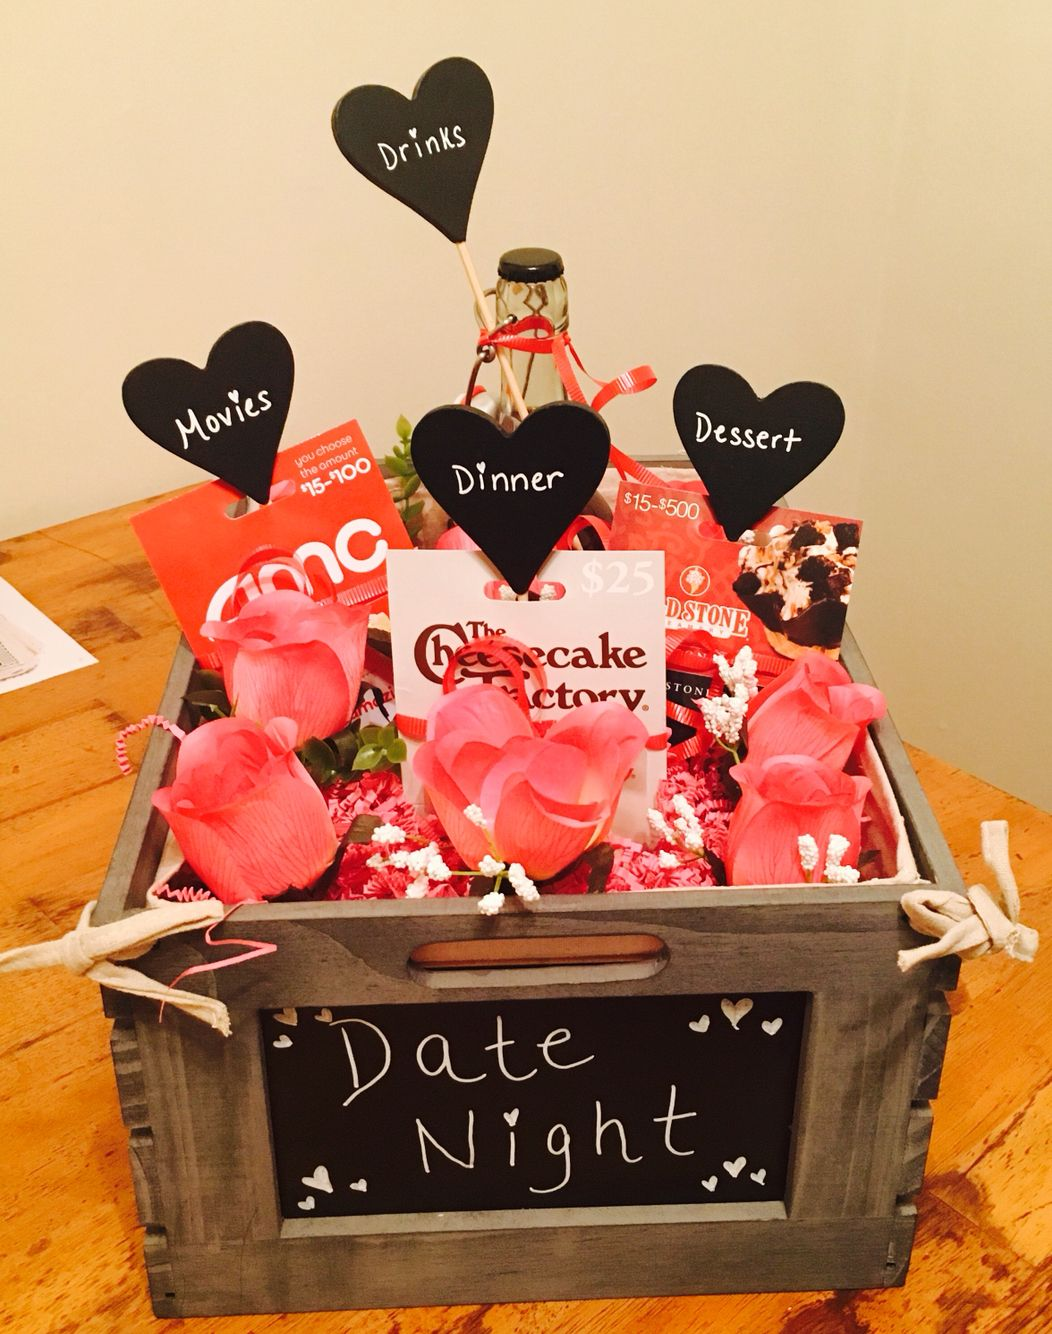 Date Night Gift Auction Basket u2026  sc 1 st  Pinterest & Date Night Gift Auction Basket u2026 | Gift Ideas | Date night gifts ...